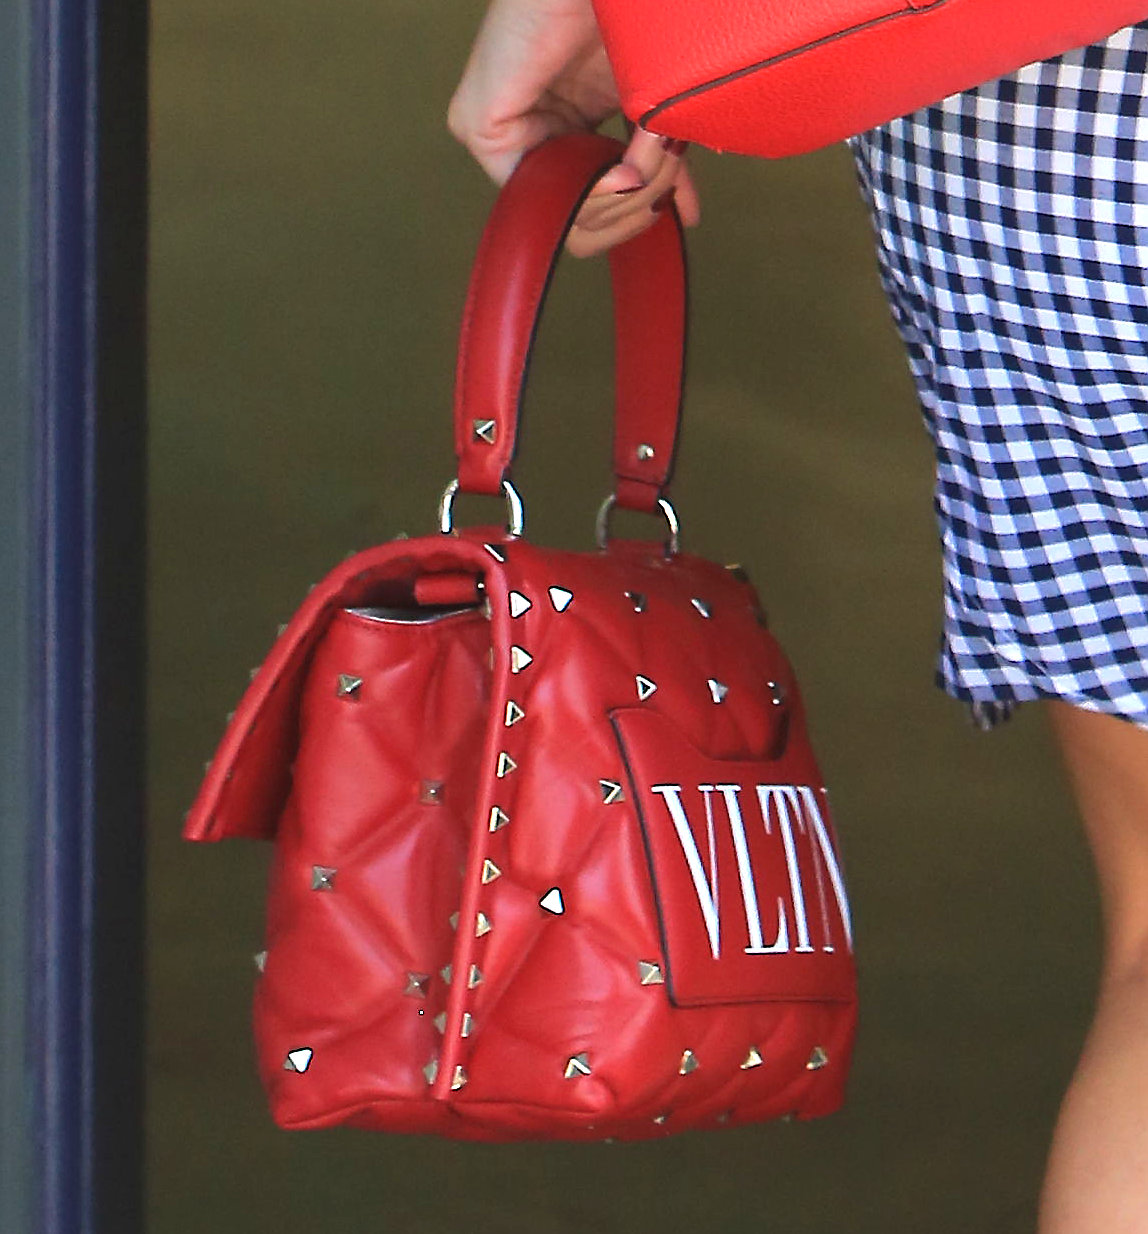 PREMIUM EXCLUSIVE Please contact X17 before any use of these exclusive photos - x17@x17agency.com   Wednesday, May 9, 2018 - Reese Witherspoon looks lovely in a gingham dress and red heels, carrying a red monogrammed Valentino Garavani VLTN Rockstud tote as she arrives at work in Brentwood, CA. The pricey tote sells for ,995 without customization, so it might've cost the A-list actress even more -- if it wasn't gifted by the designer! -  X17online.com